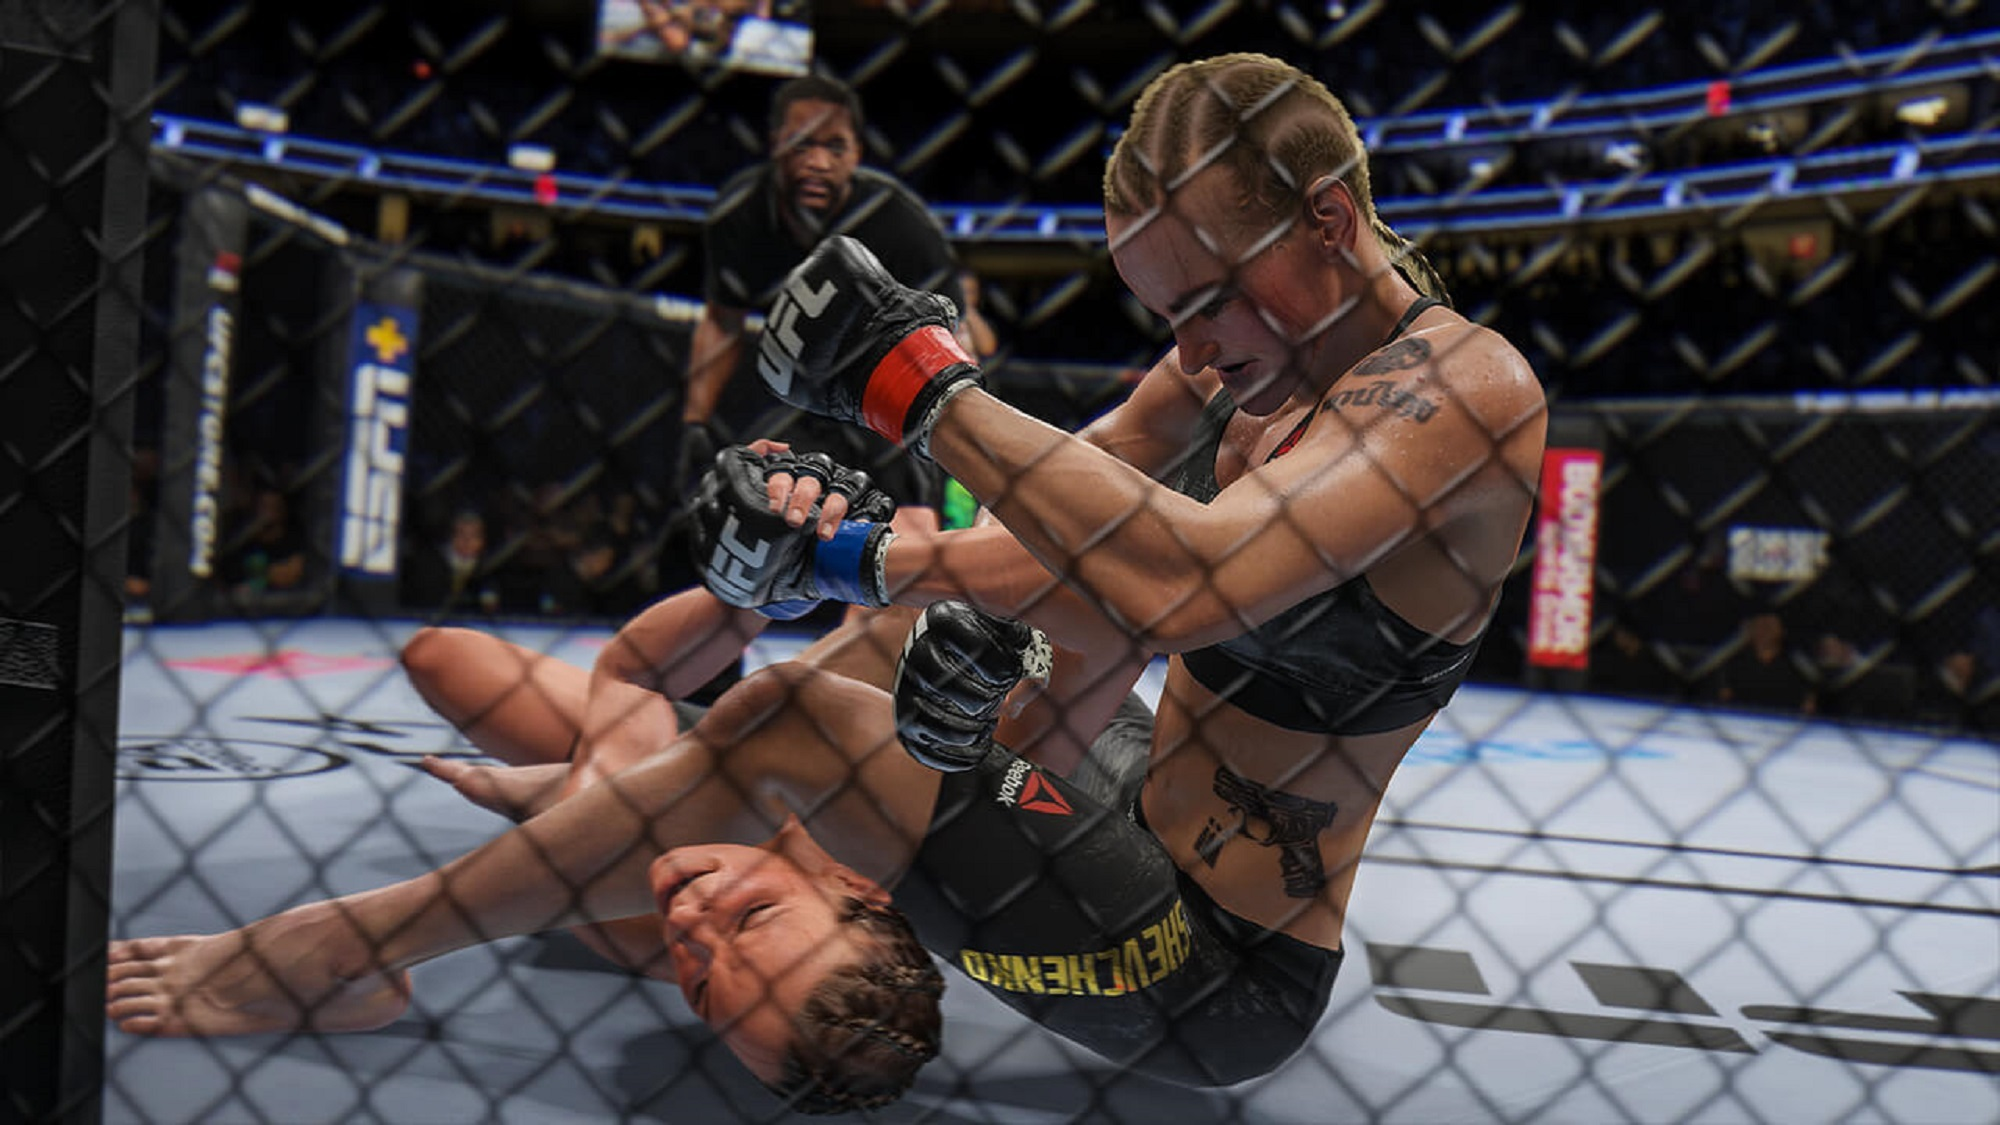 Ea Sports Ufc 4 Everything You Need To Know Release Date Fighters And More